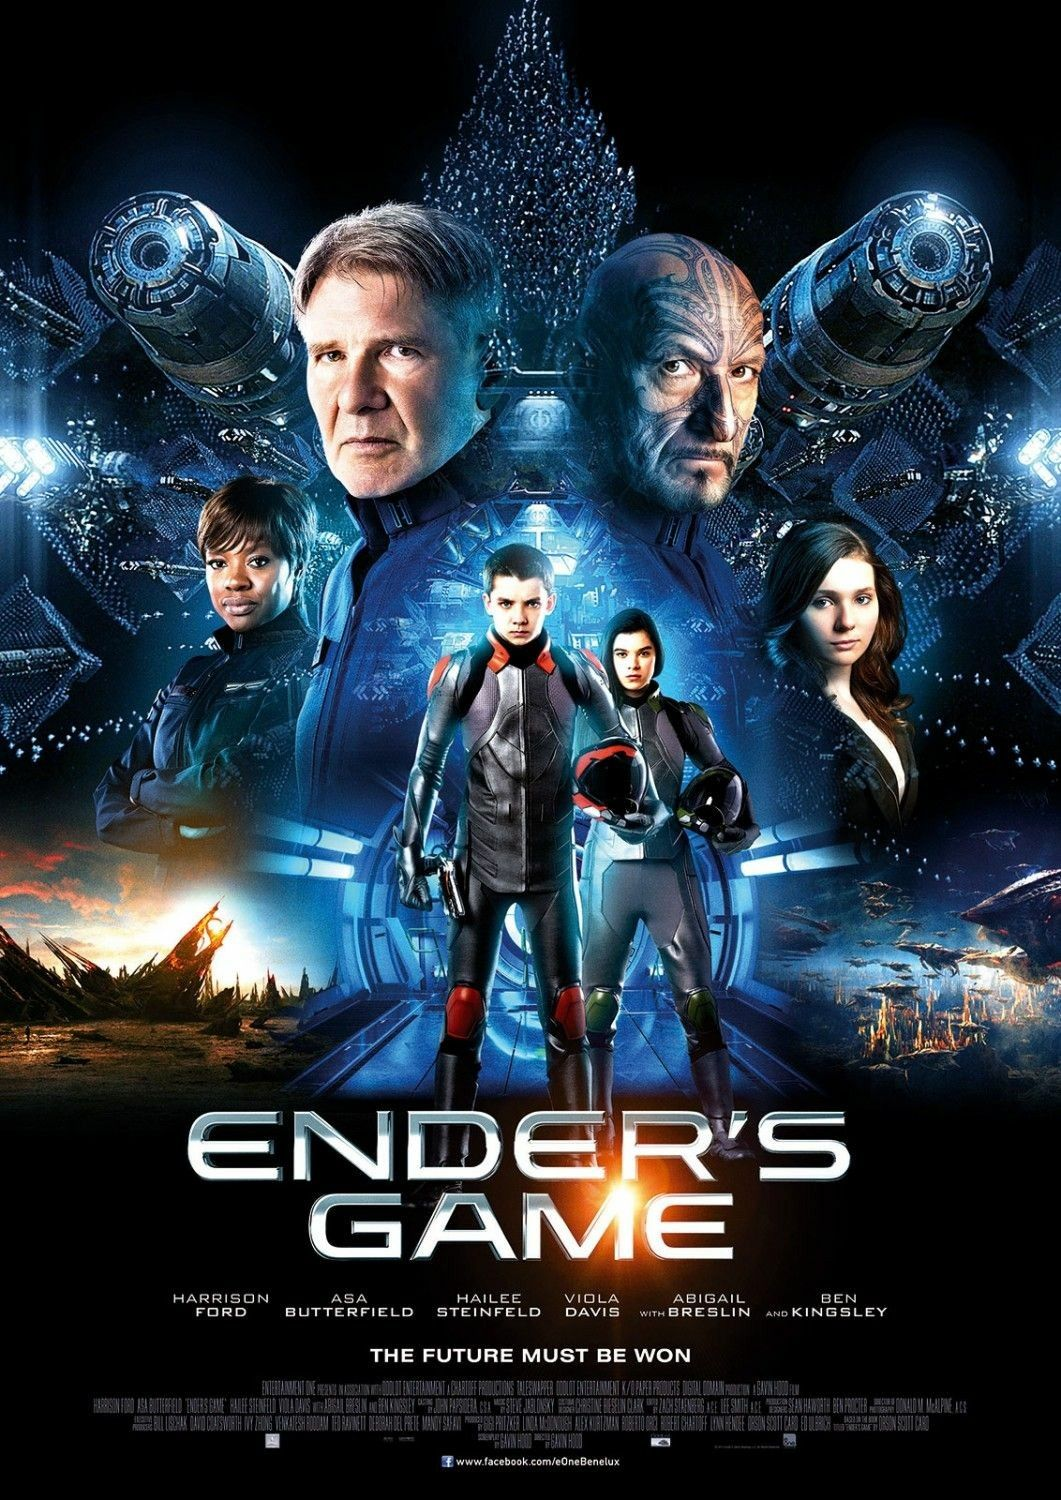 ENDER'S GAME 3013 Bluray dual audio 480p 300mb (With